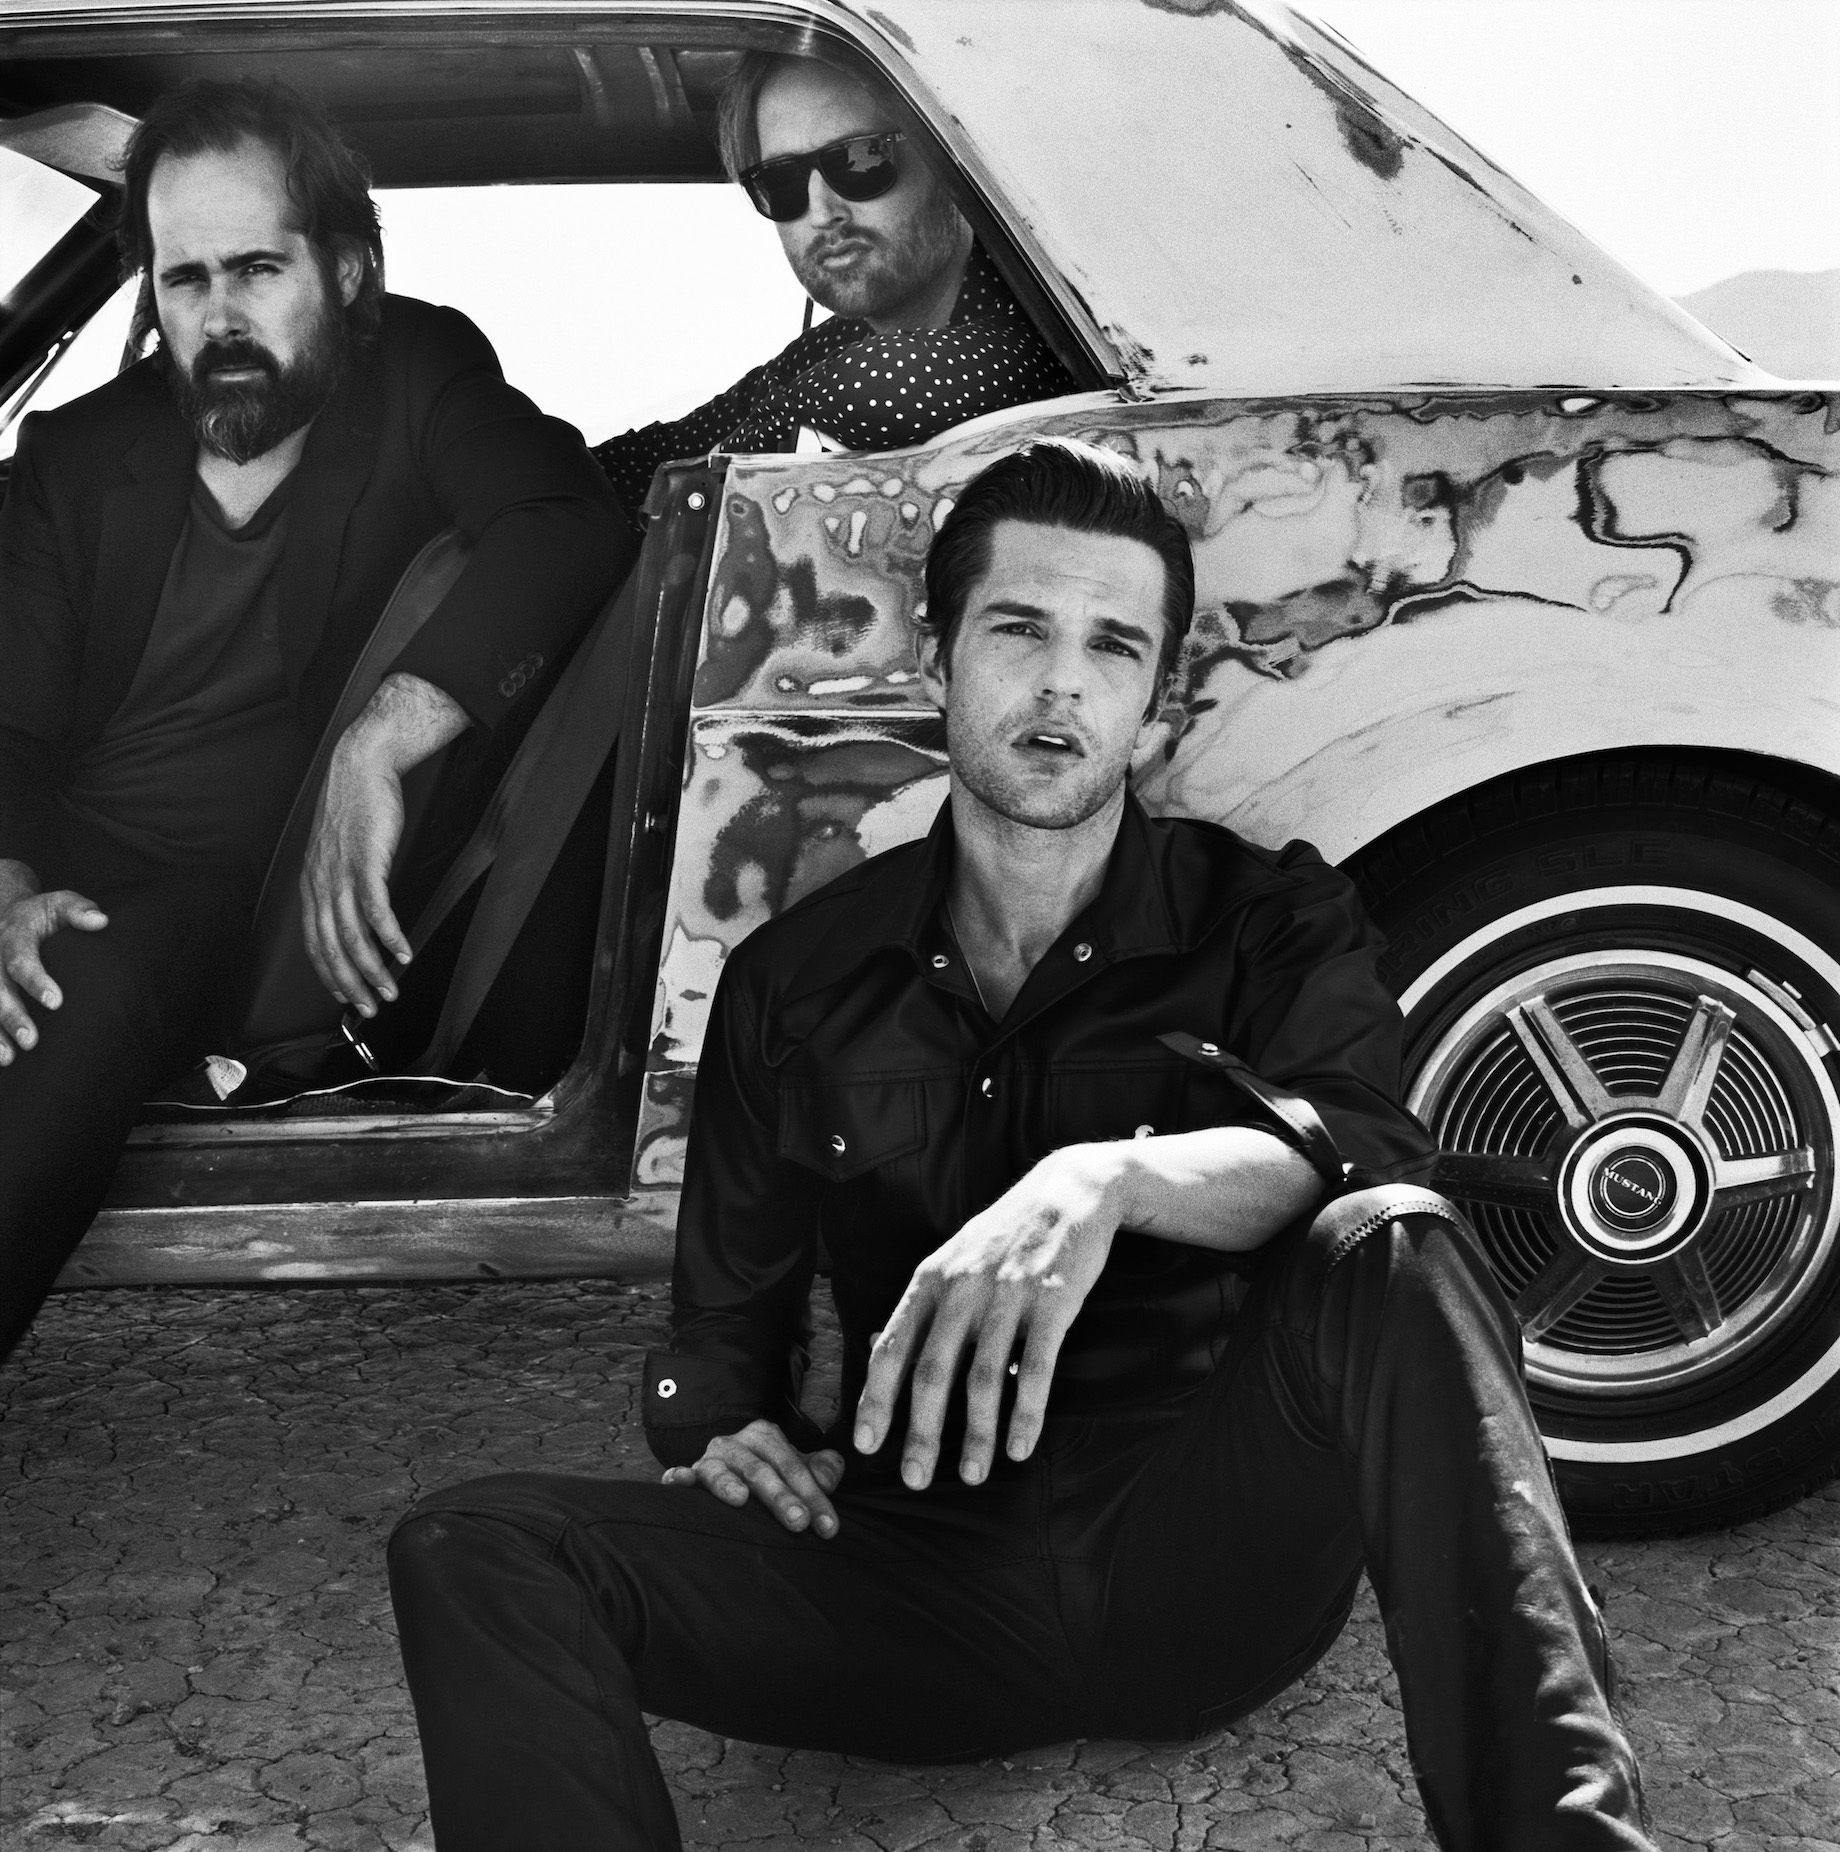 GLASTONBURY-BOUND?: The Killers